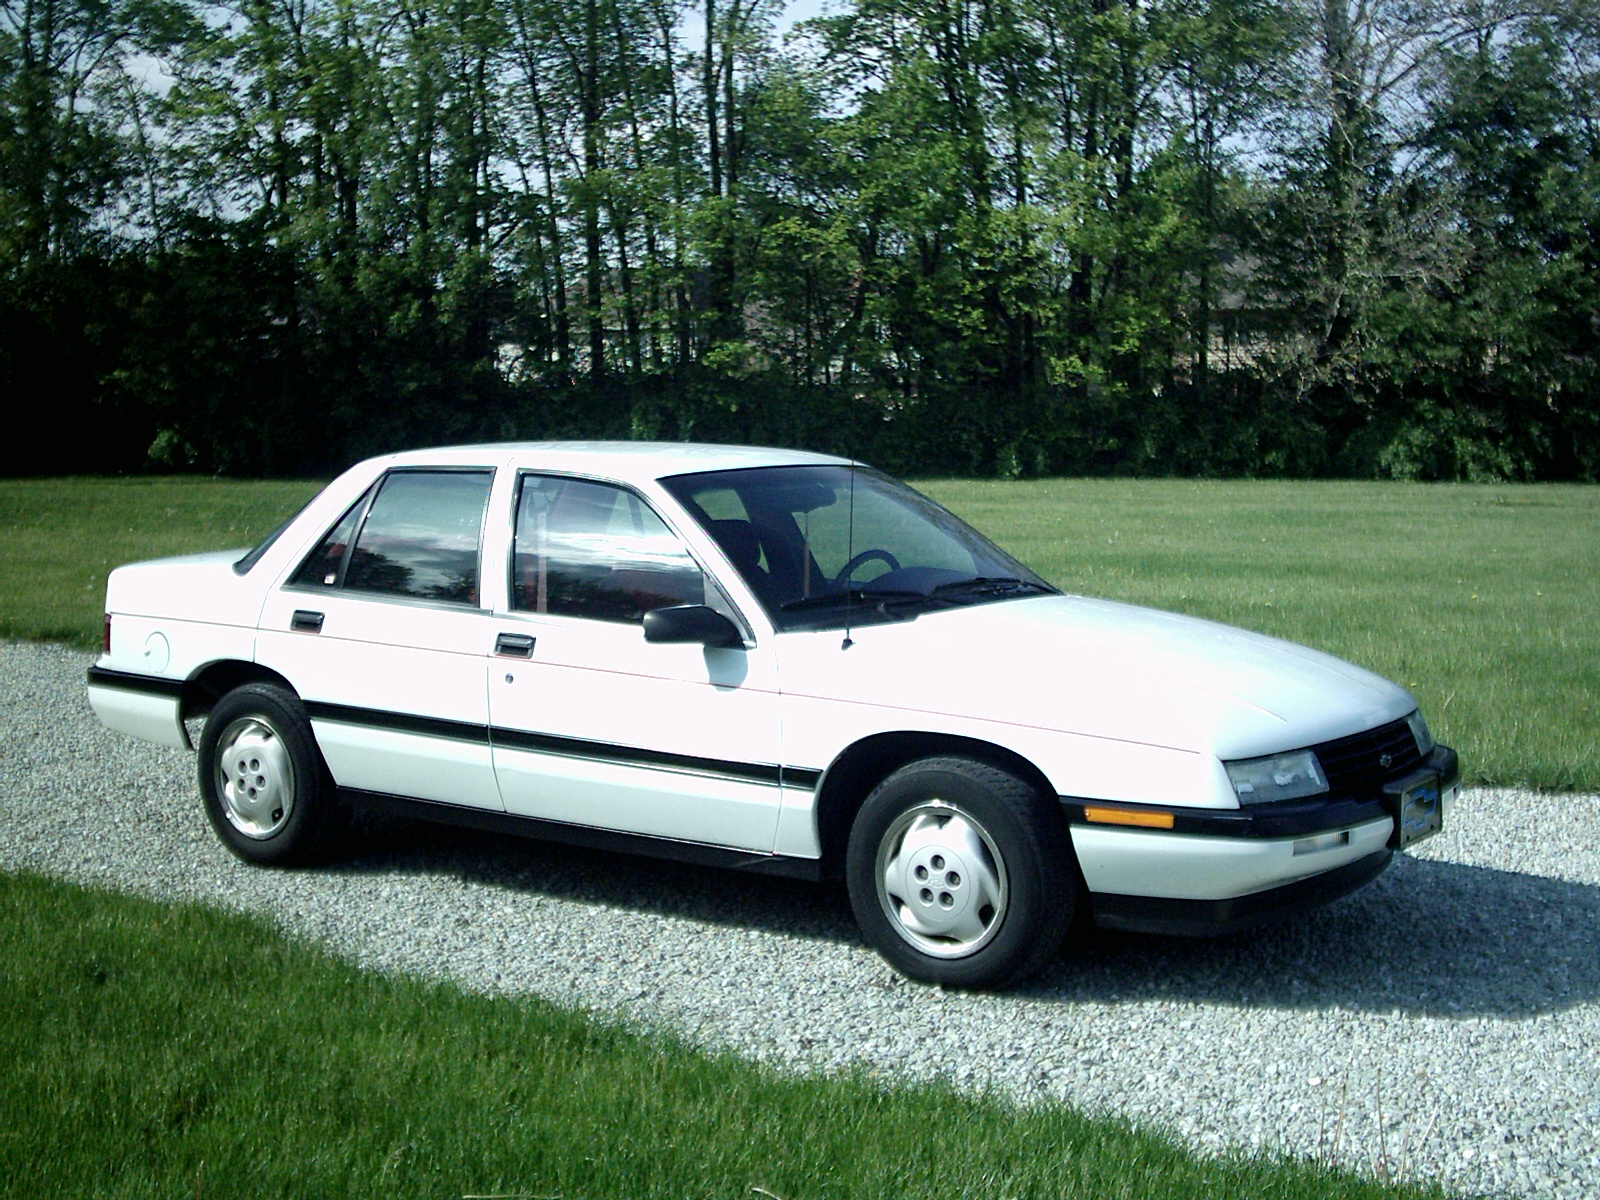 1992 Chevrolet Corsica Photos, Informations, Articles Bestcarmag Com 1988 Chevy  454 Engine Diagram 92 Chevy Corsica 4 Cyl Engine Diagrams